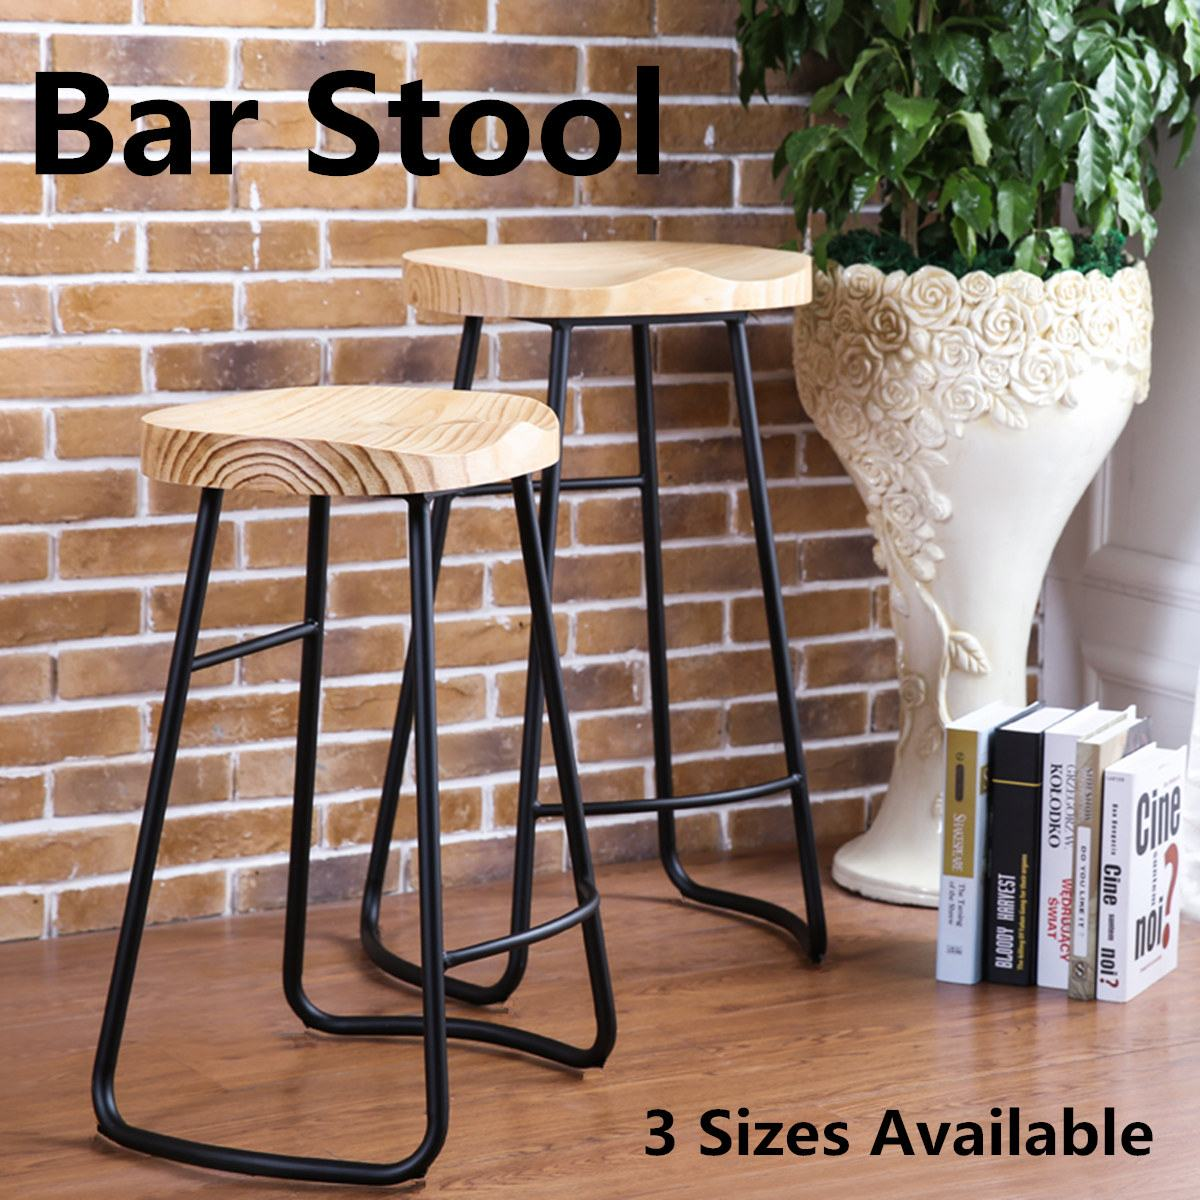 Supply 2pcs Modern Adjustable Backrest Bar Chairs 360 Degree Rotation Seat Stool Restaurants Living Room Office Cafe Furniture Kit Selected Material Bar Furniture